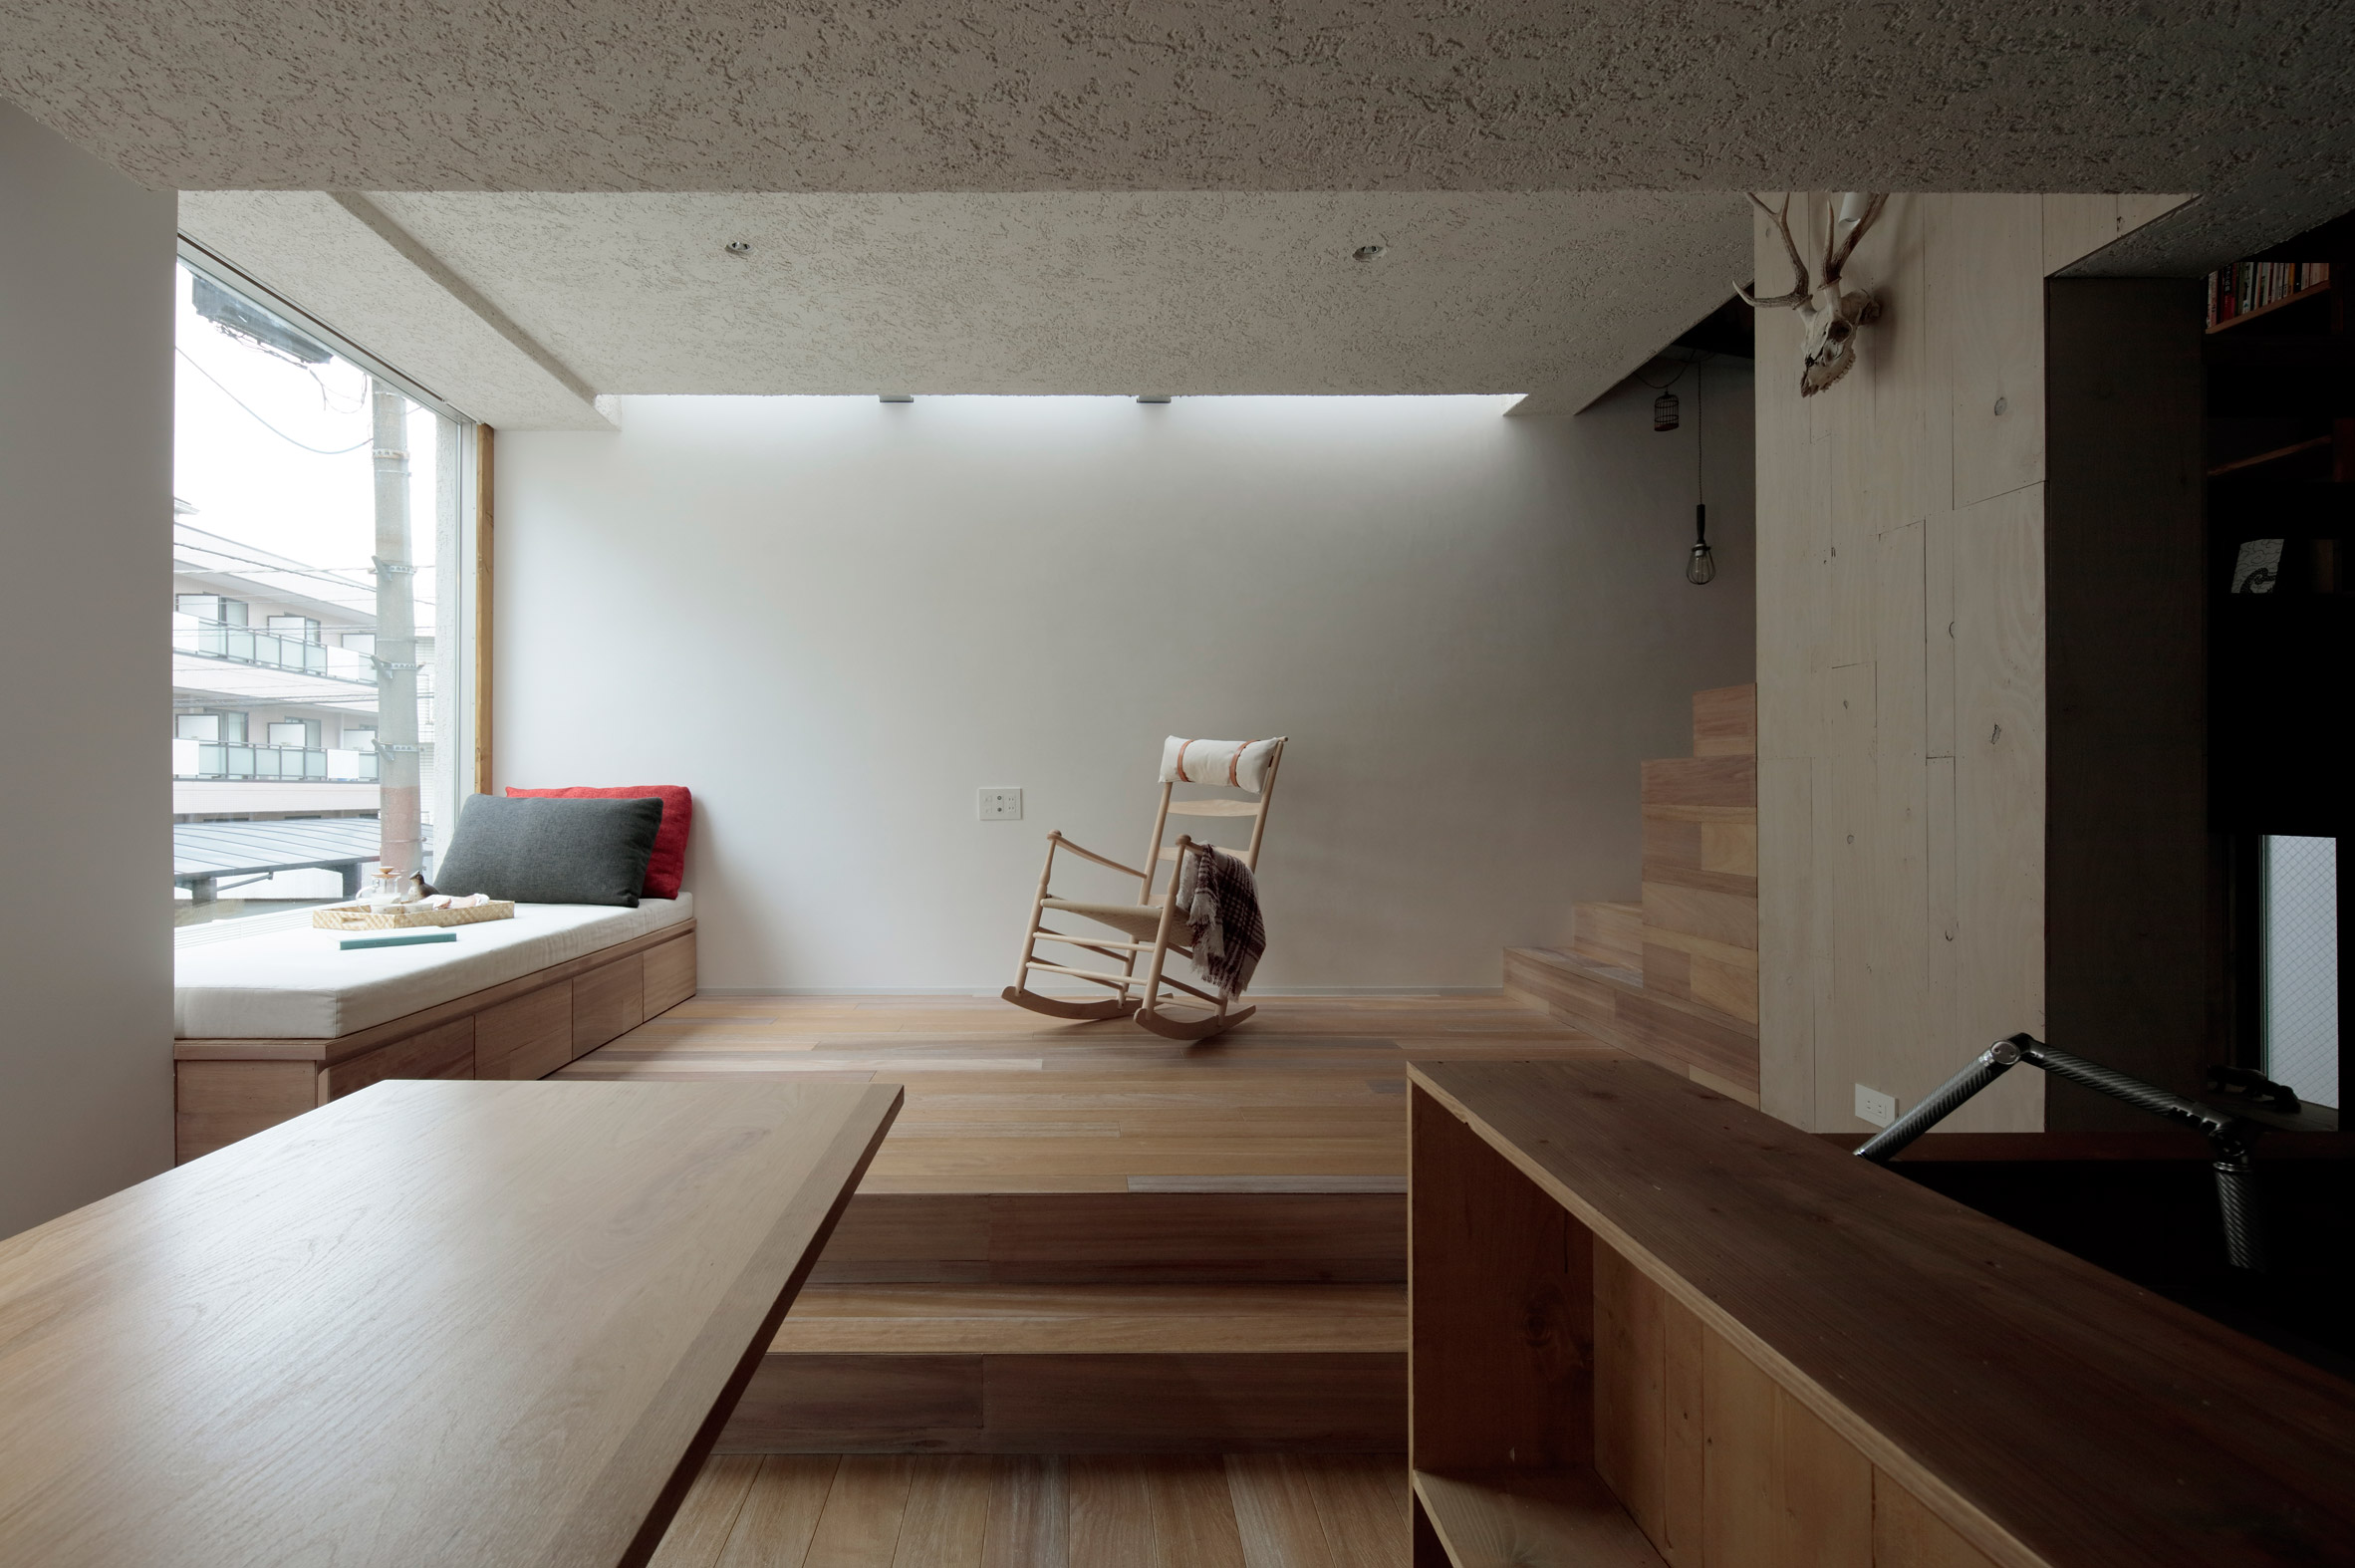 House in the City by Ryosuke Fujii